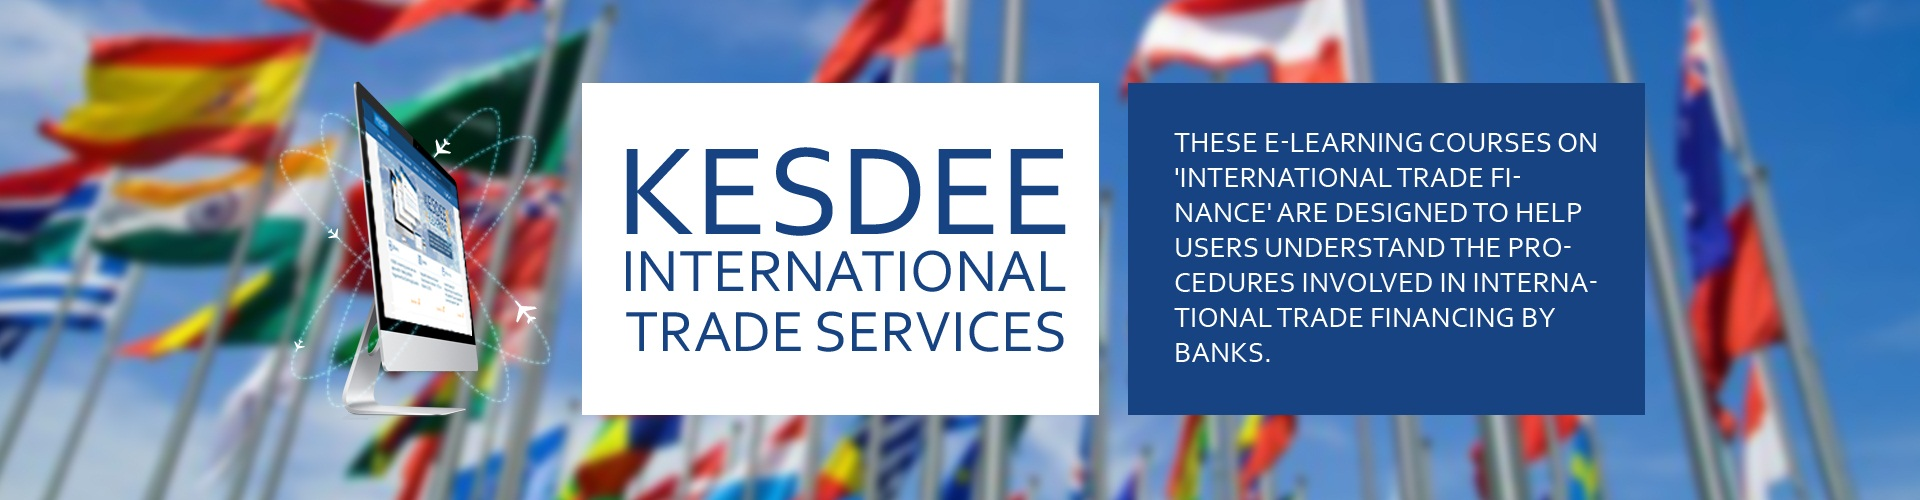 coursework in international ttrade Naila is the head of law at the university of essex online having joined the pg dip international trade and commercial law is made of written coursework.